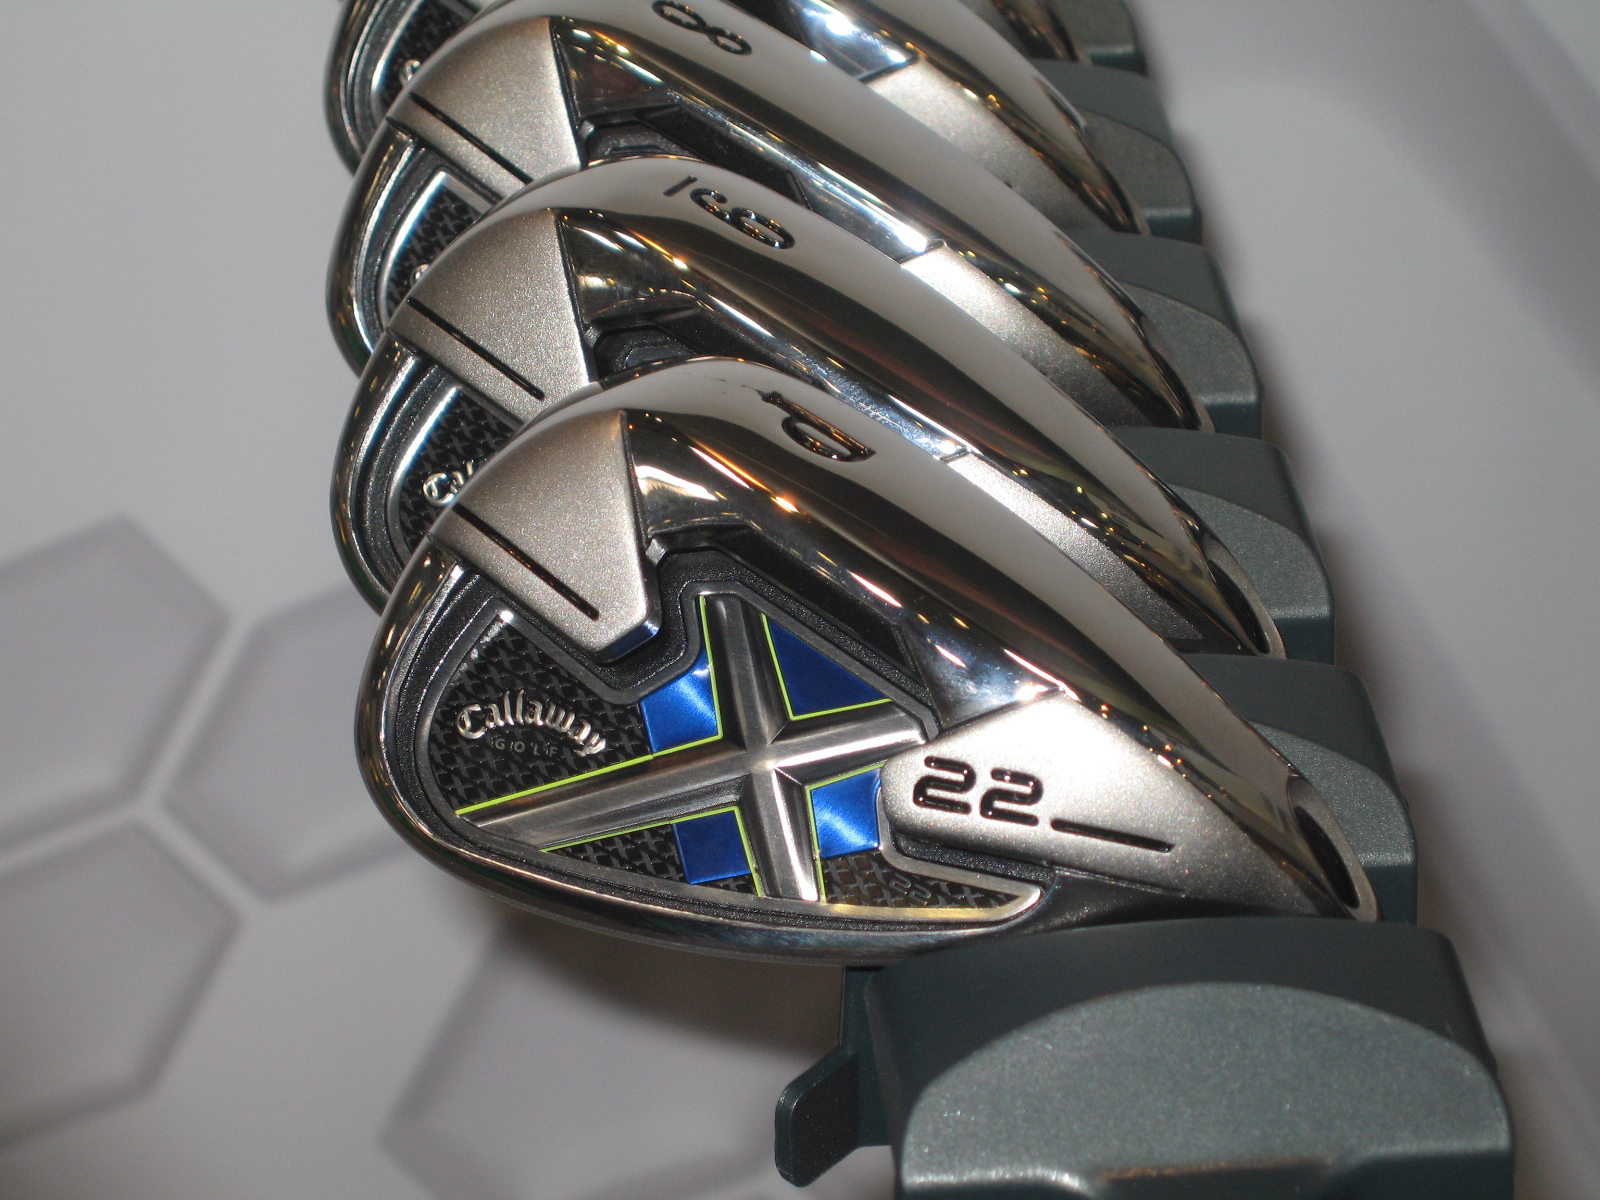 Callaway's X22 irons should be even more forgiving